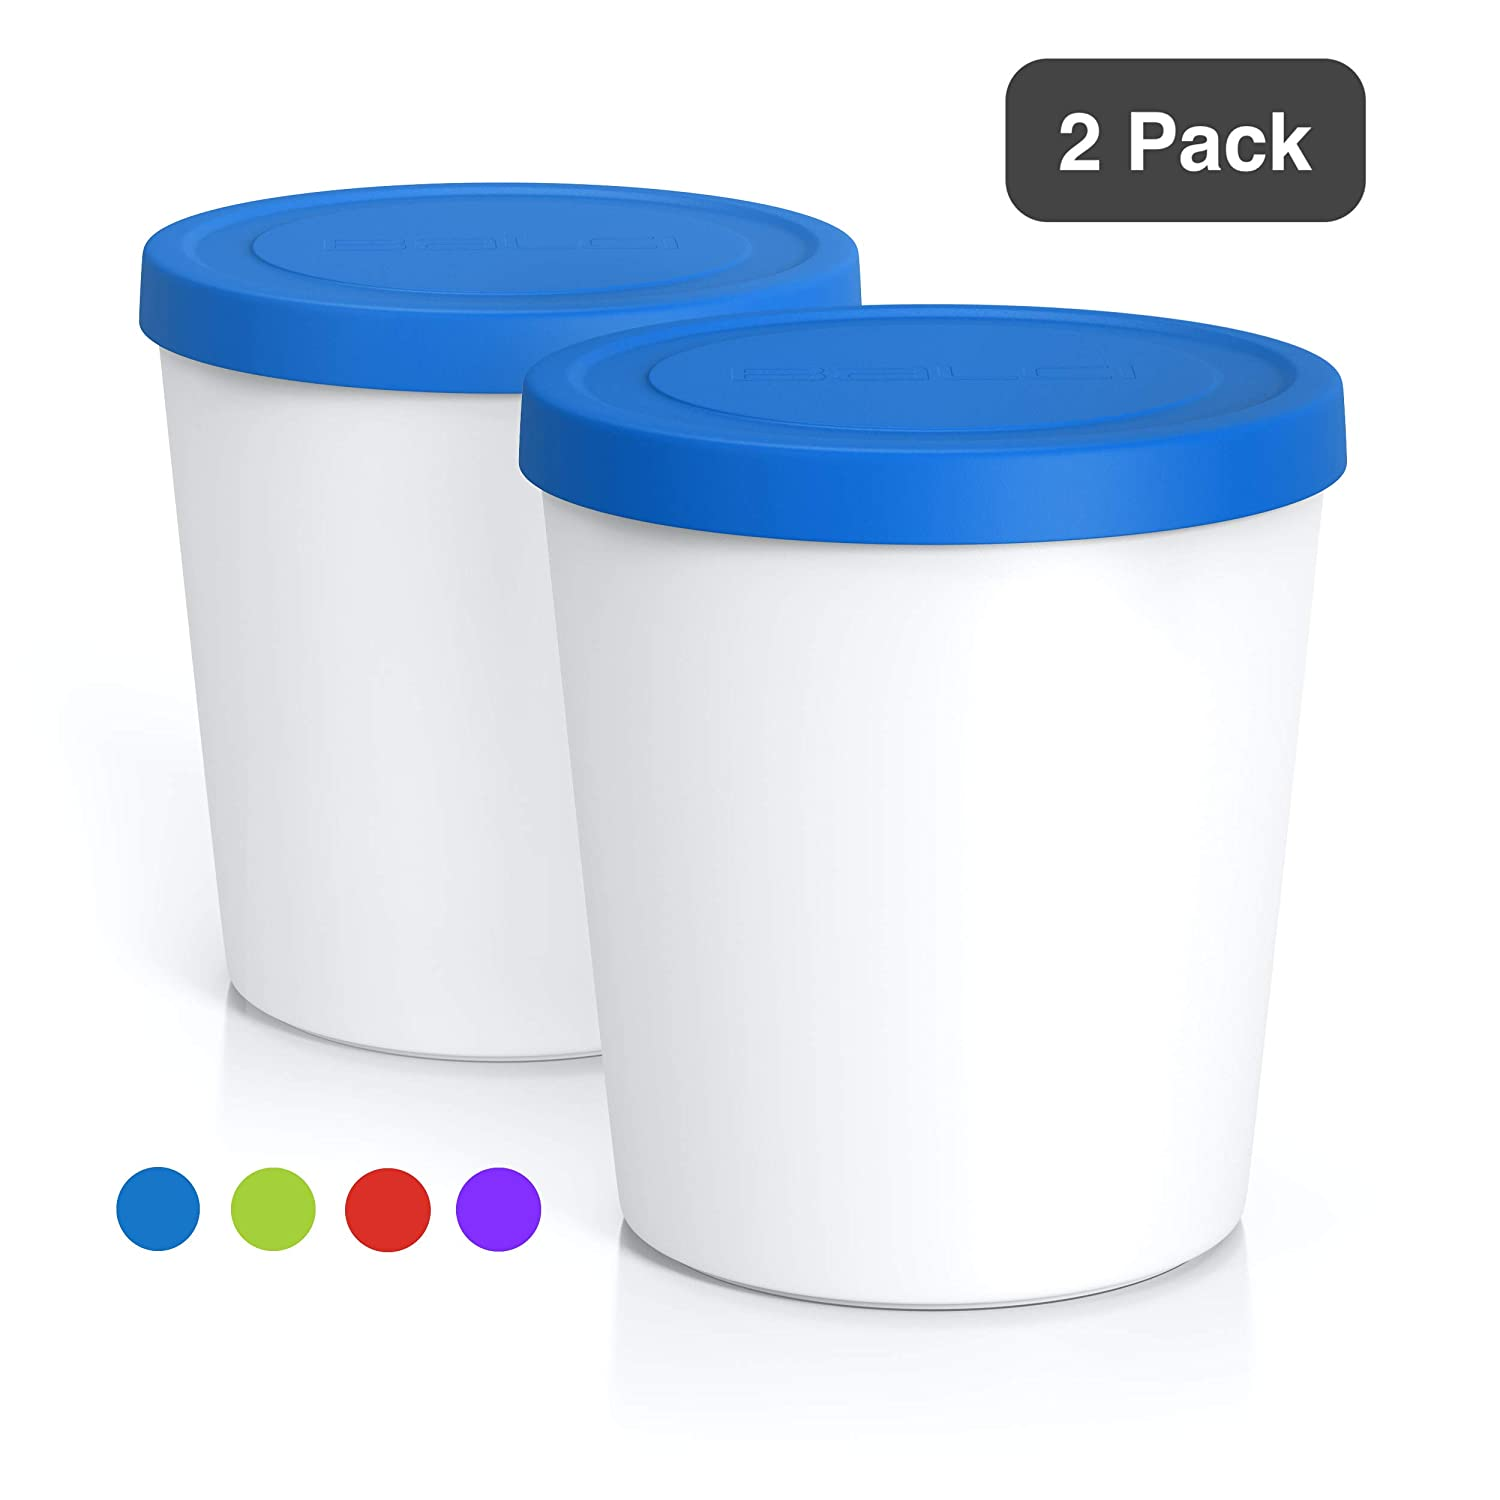 BALCI - Premium Ice Cream Containers (2 PACK - 1 Quart Each) Perfect Freezer Storage Tubs with Lids for Ice Cream, Sorbet and Gelato! (BLUE)